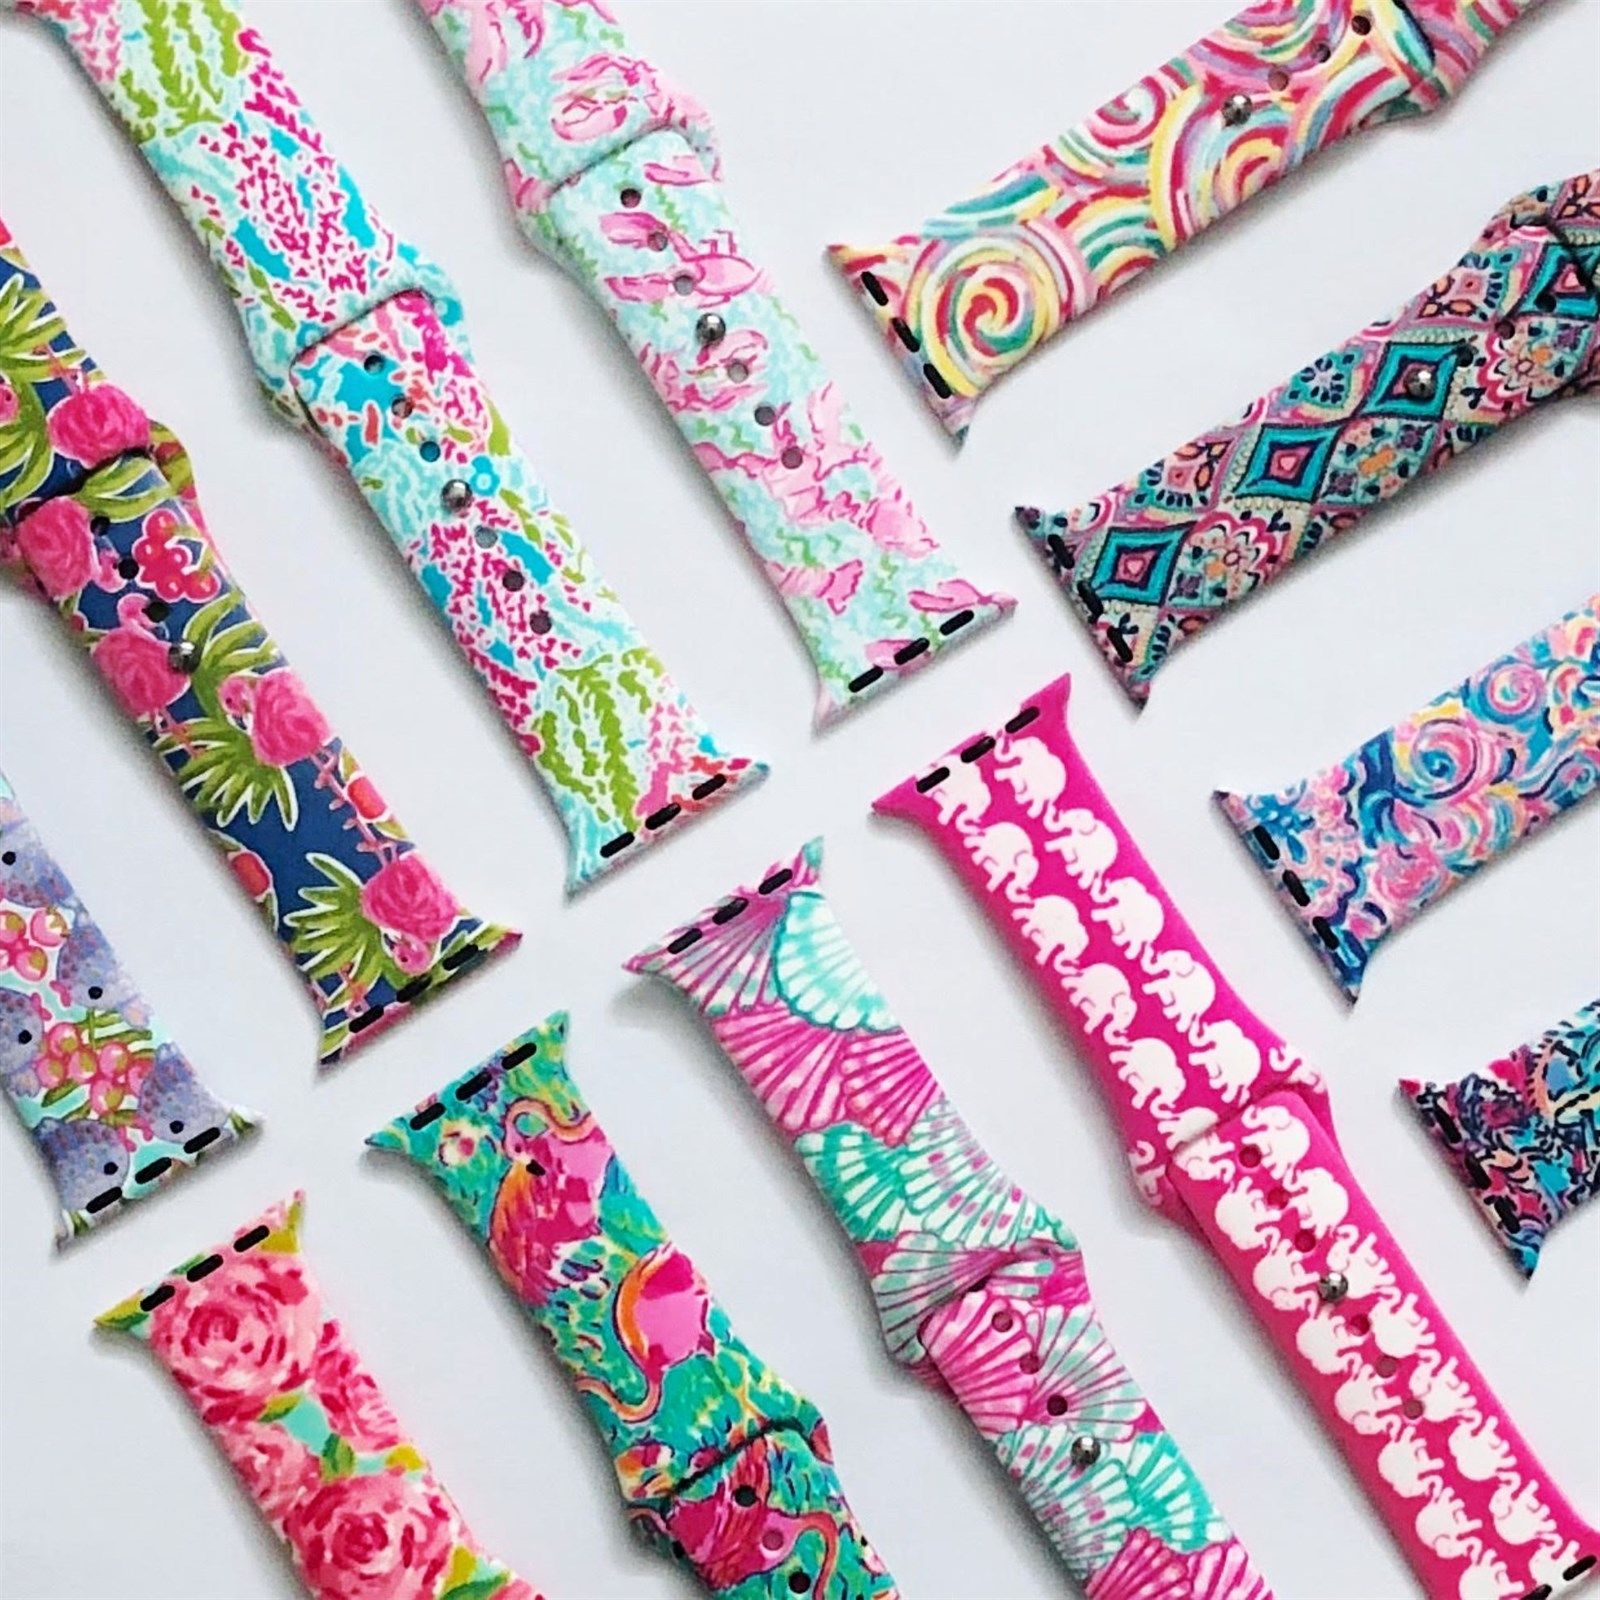 Patterned Apple Watch Bands